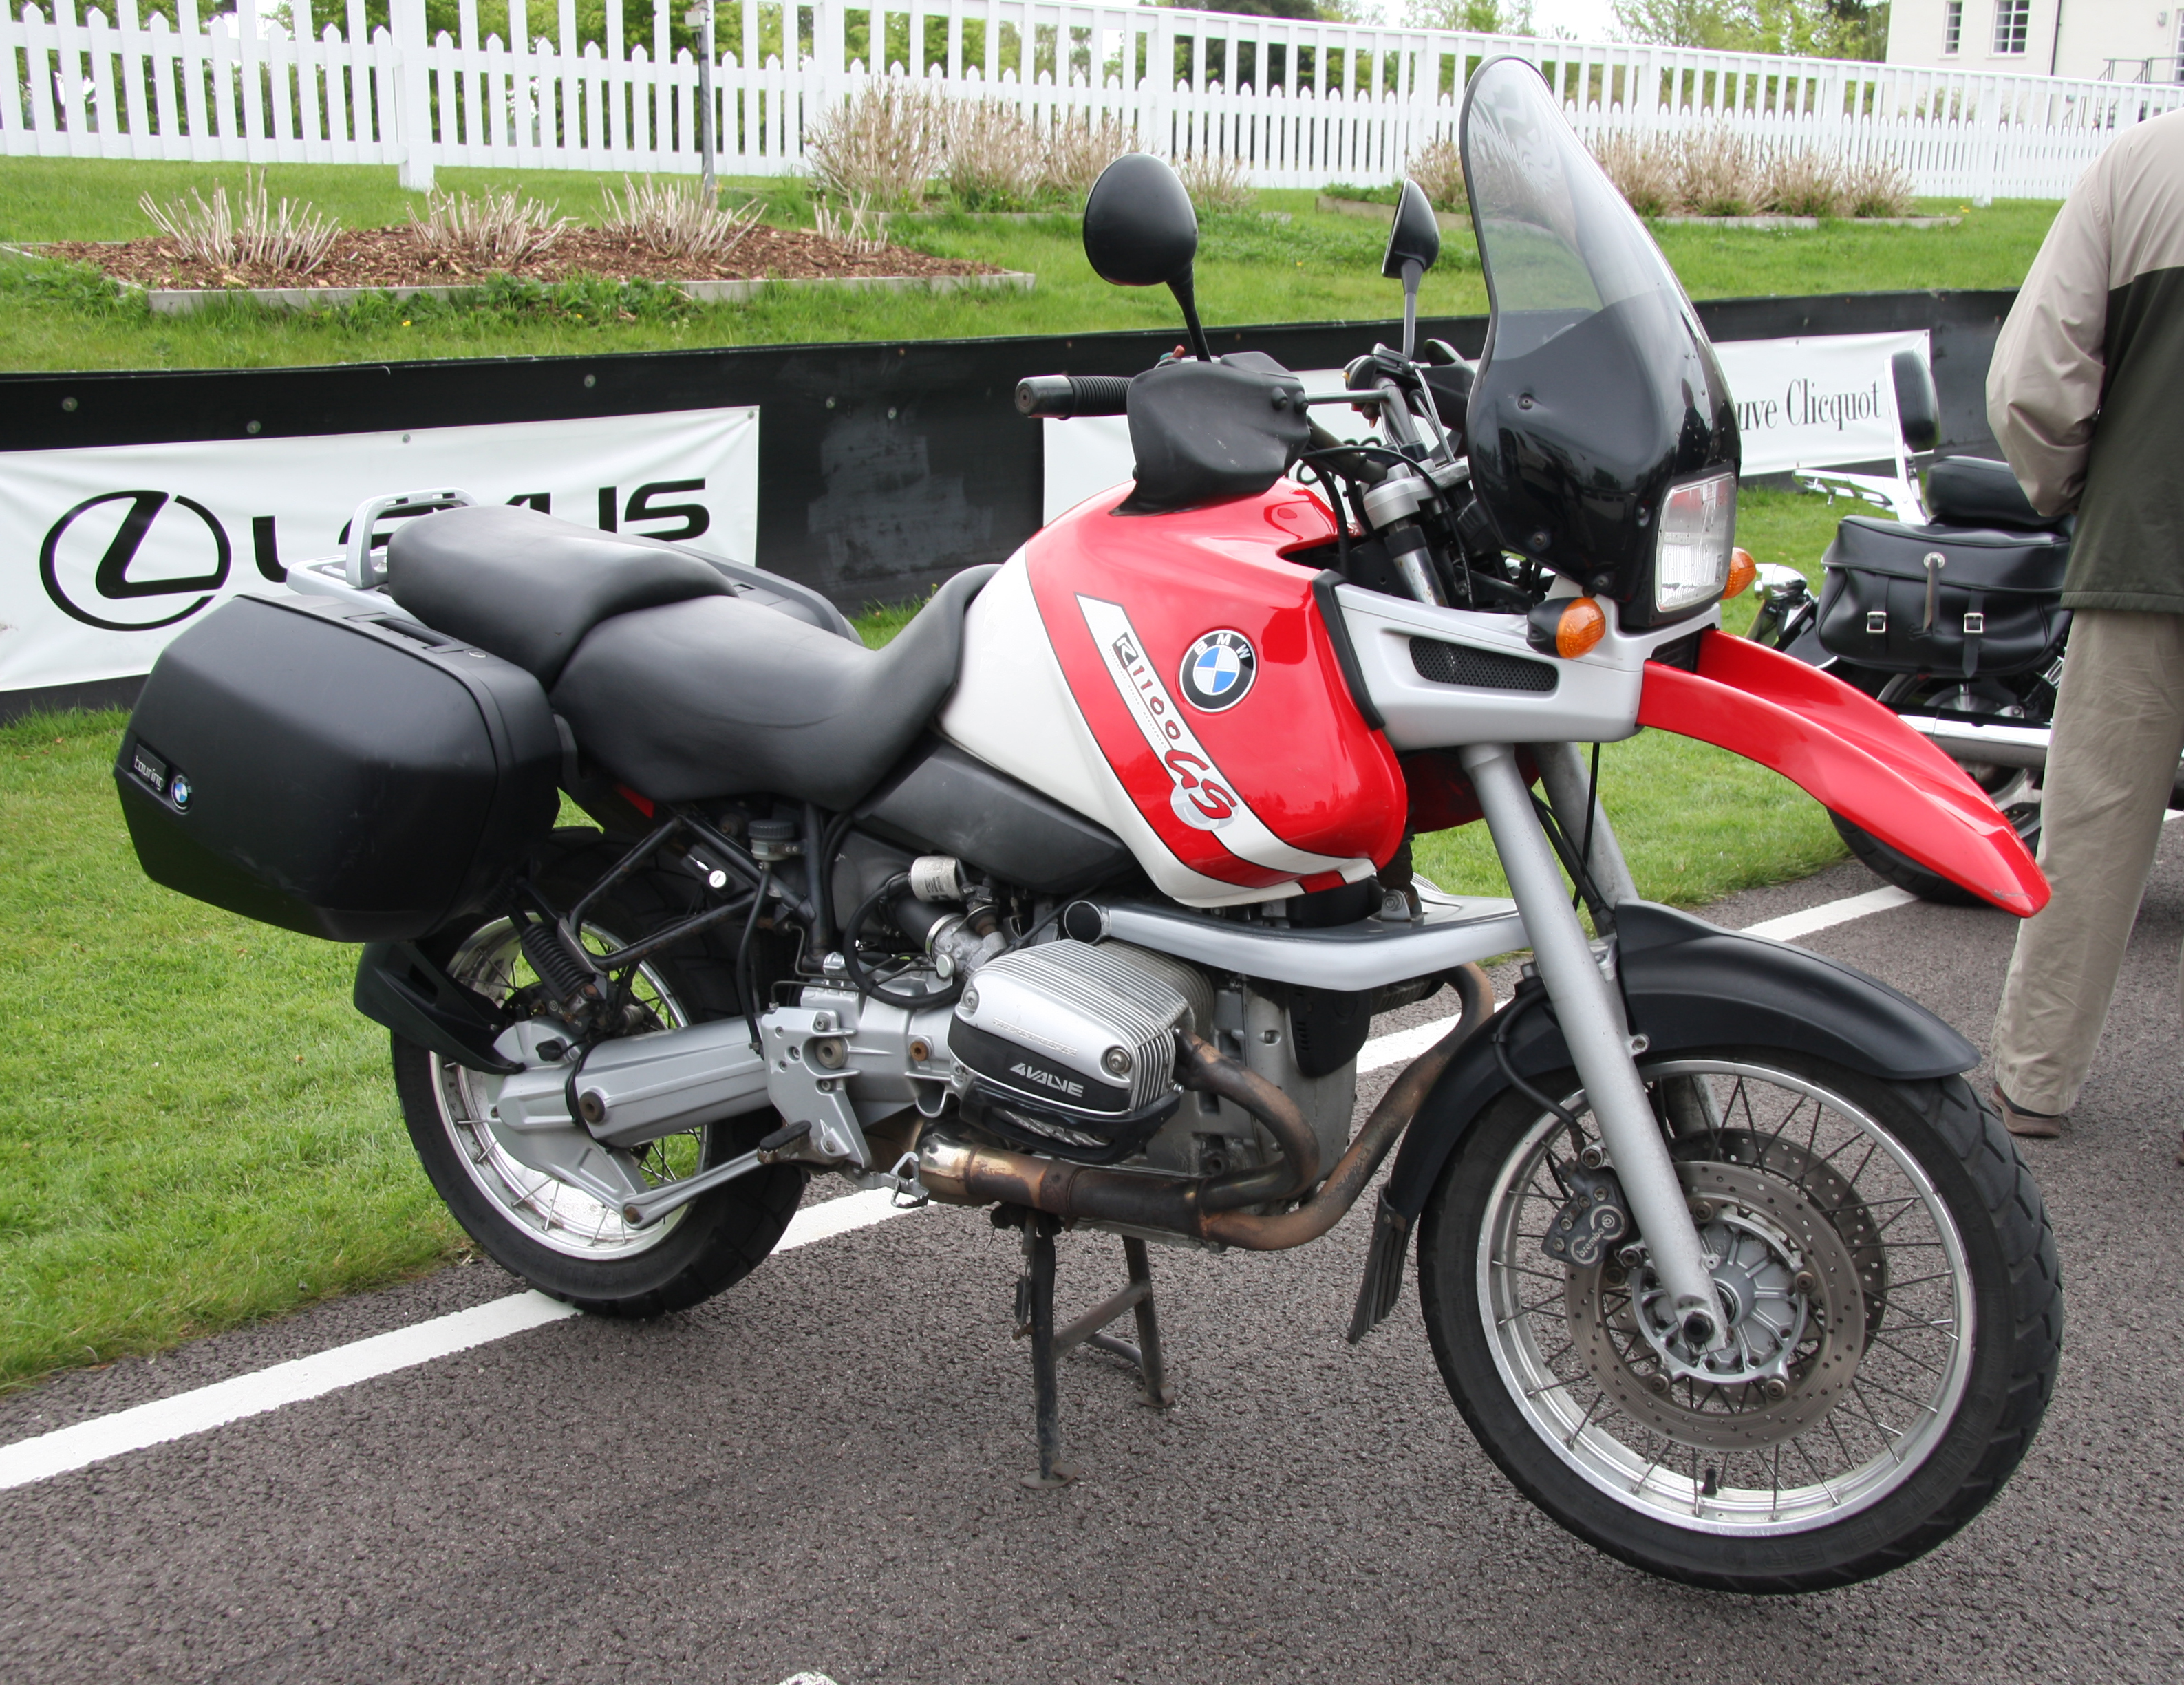 BMW R1100GS 1993 images #77298